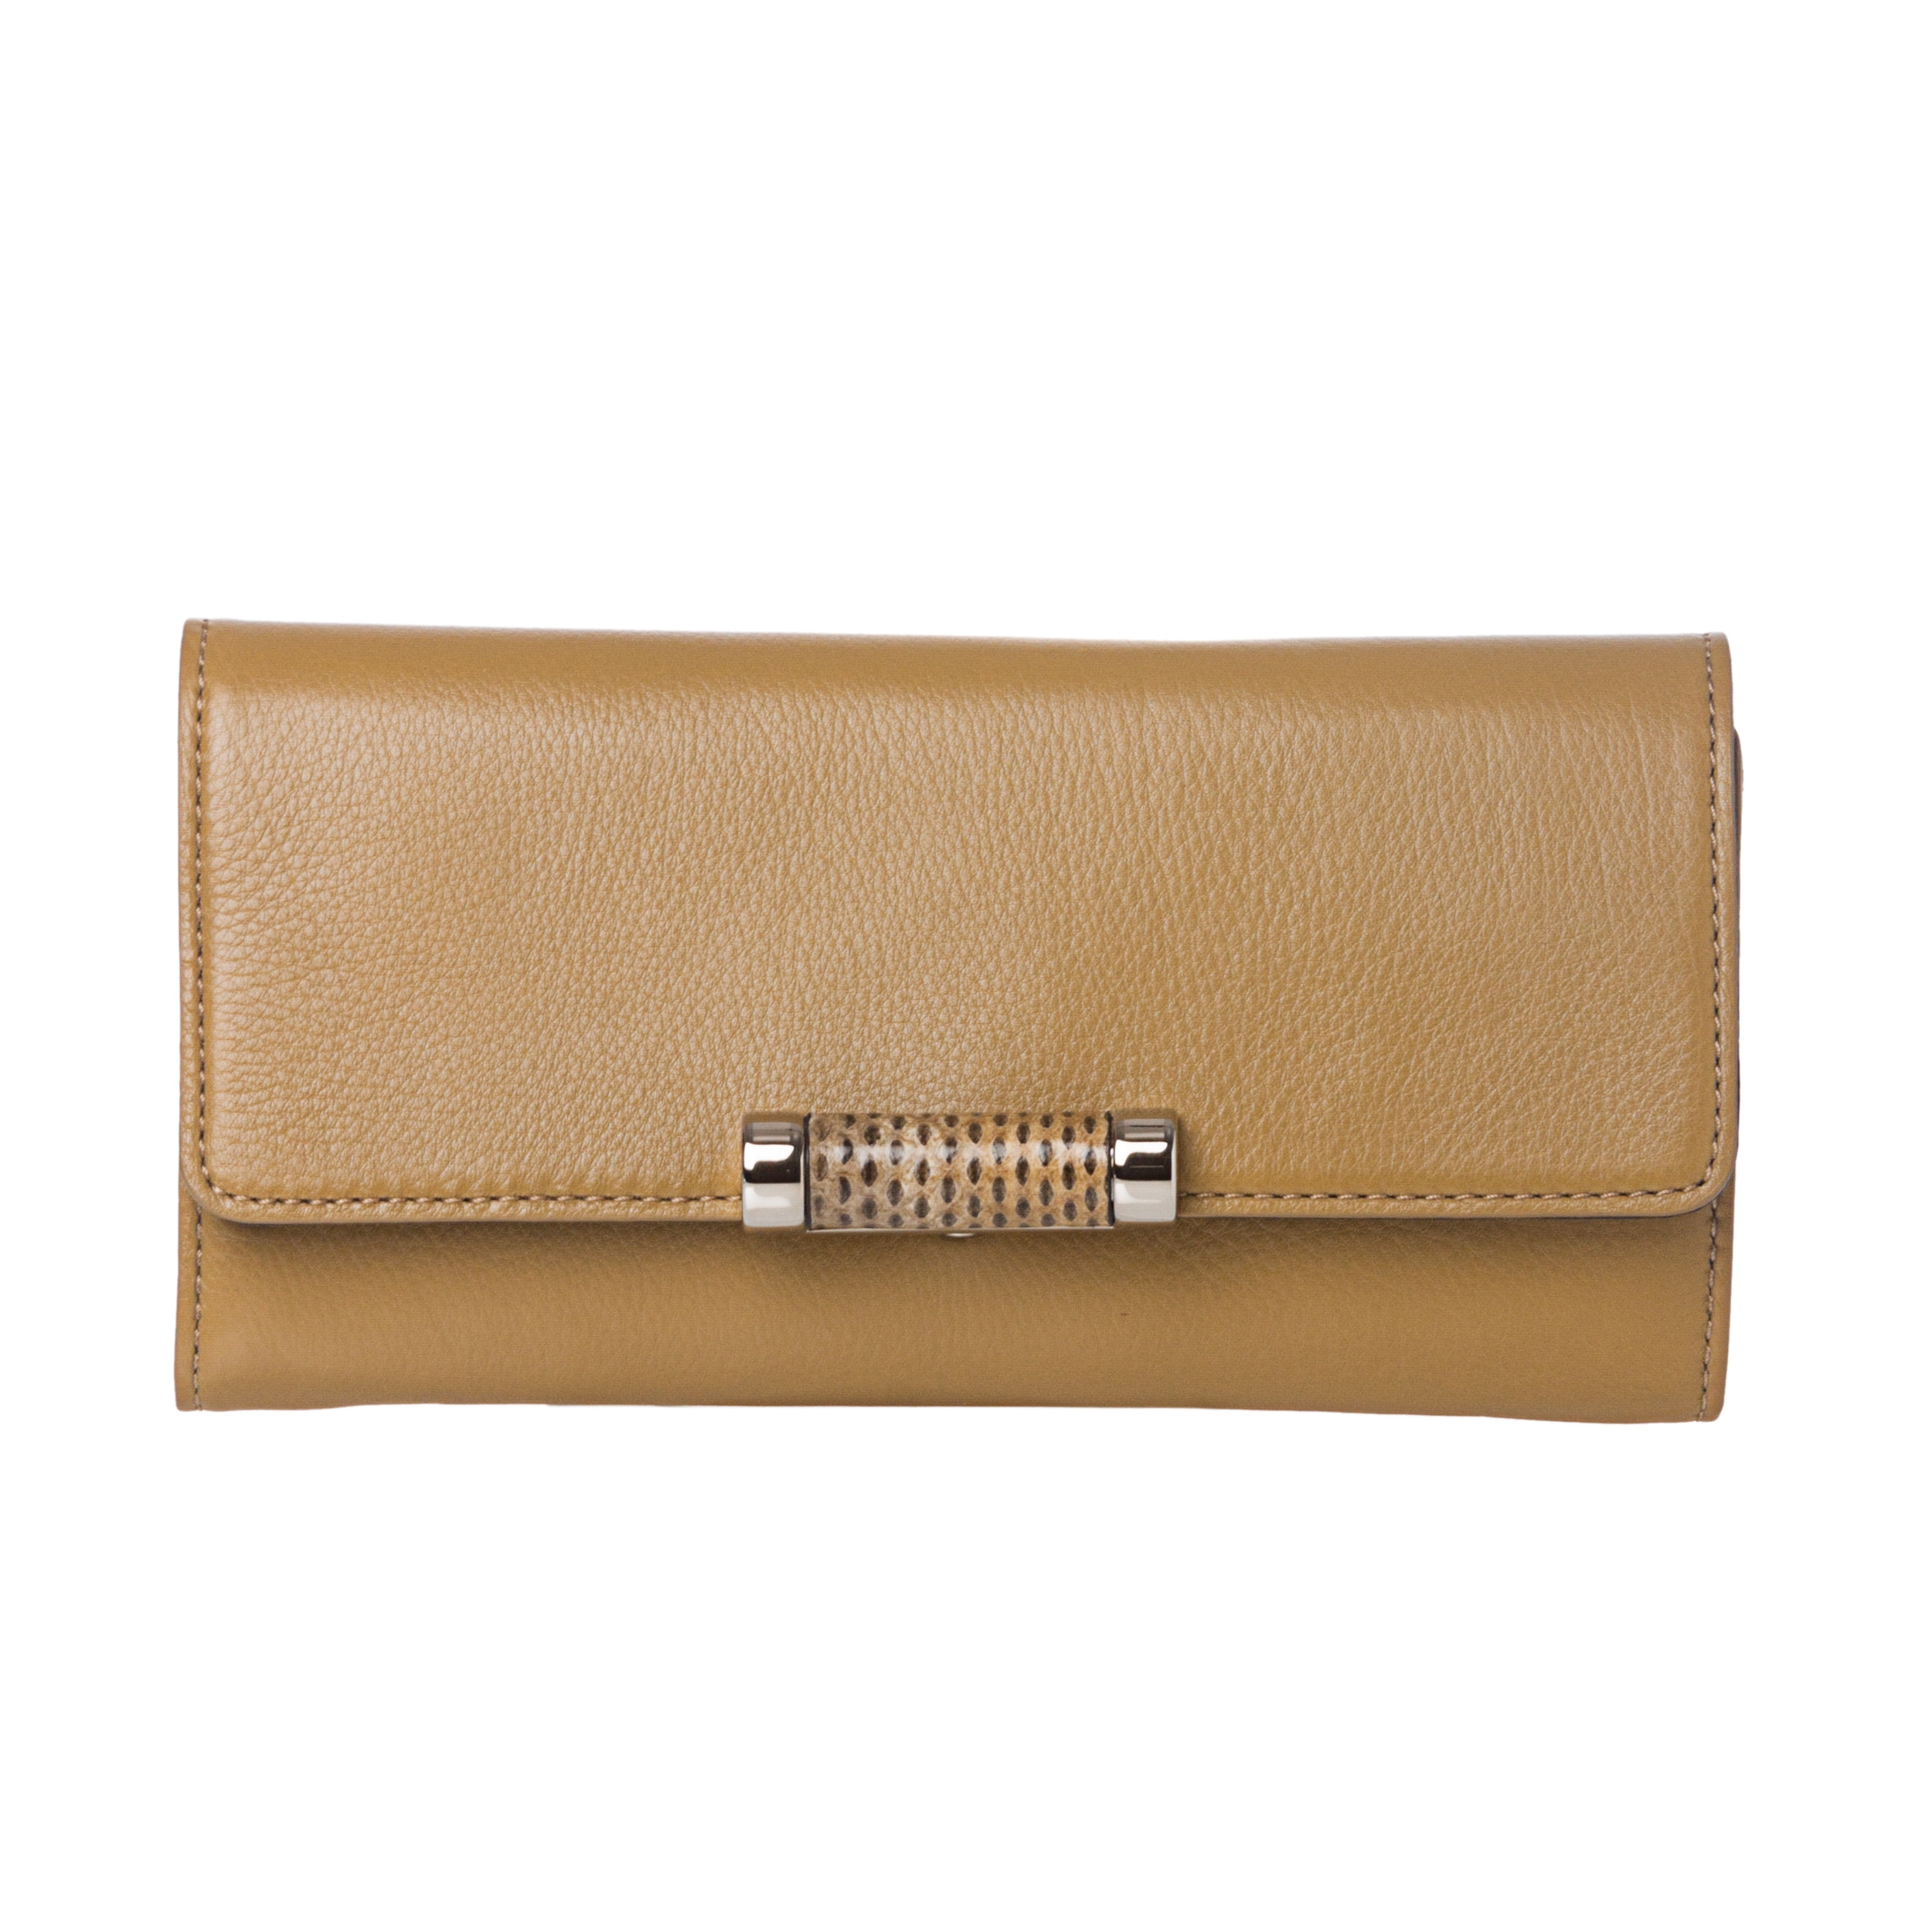 Michael Kors 'Tonne' Beige Leather Continental Wallet